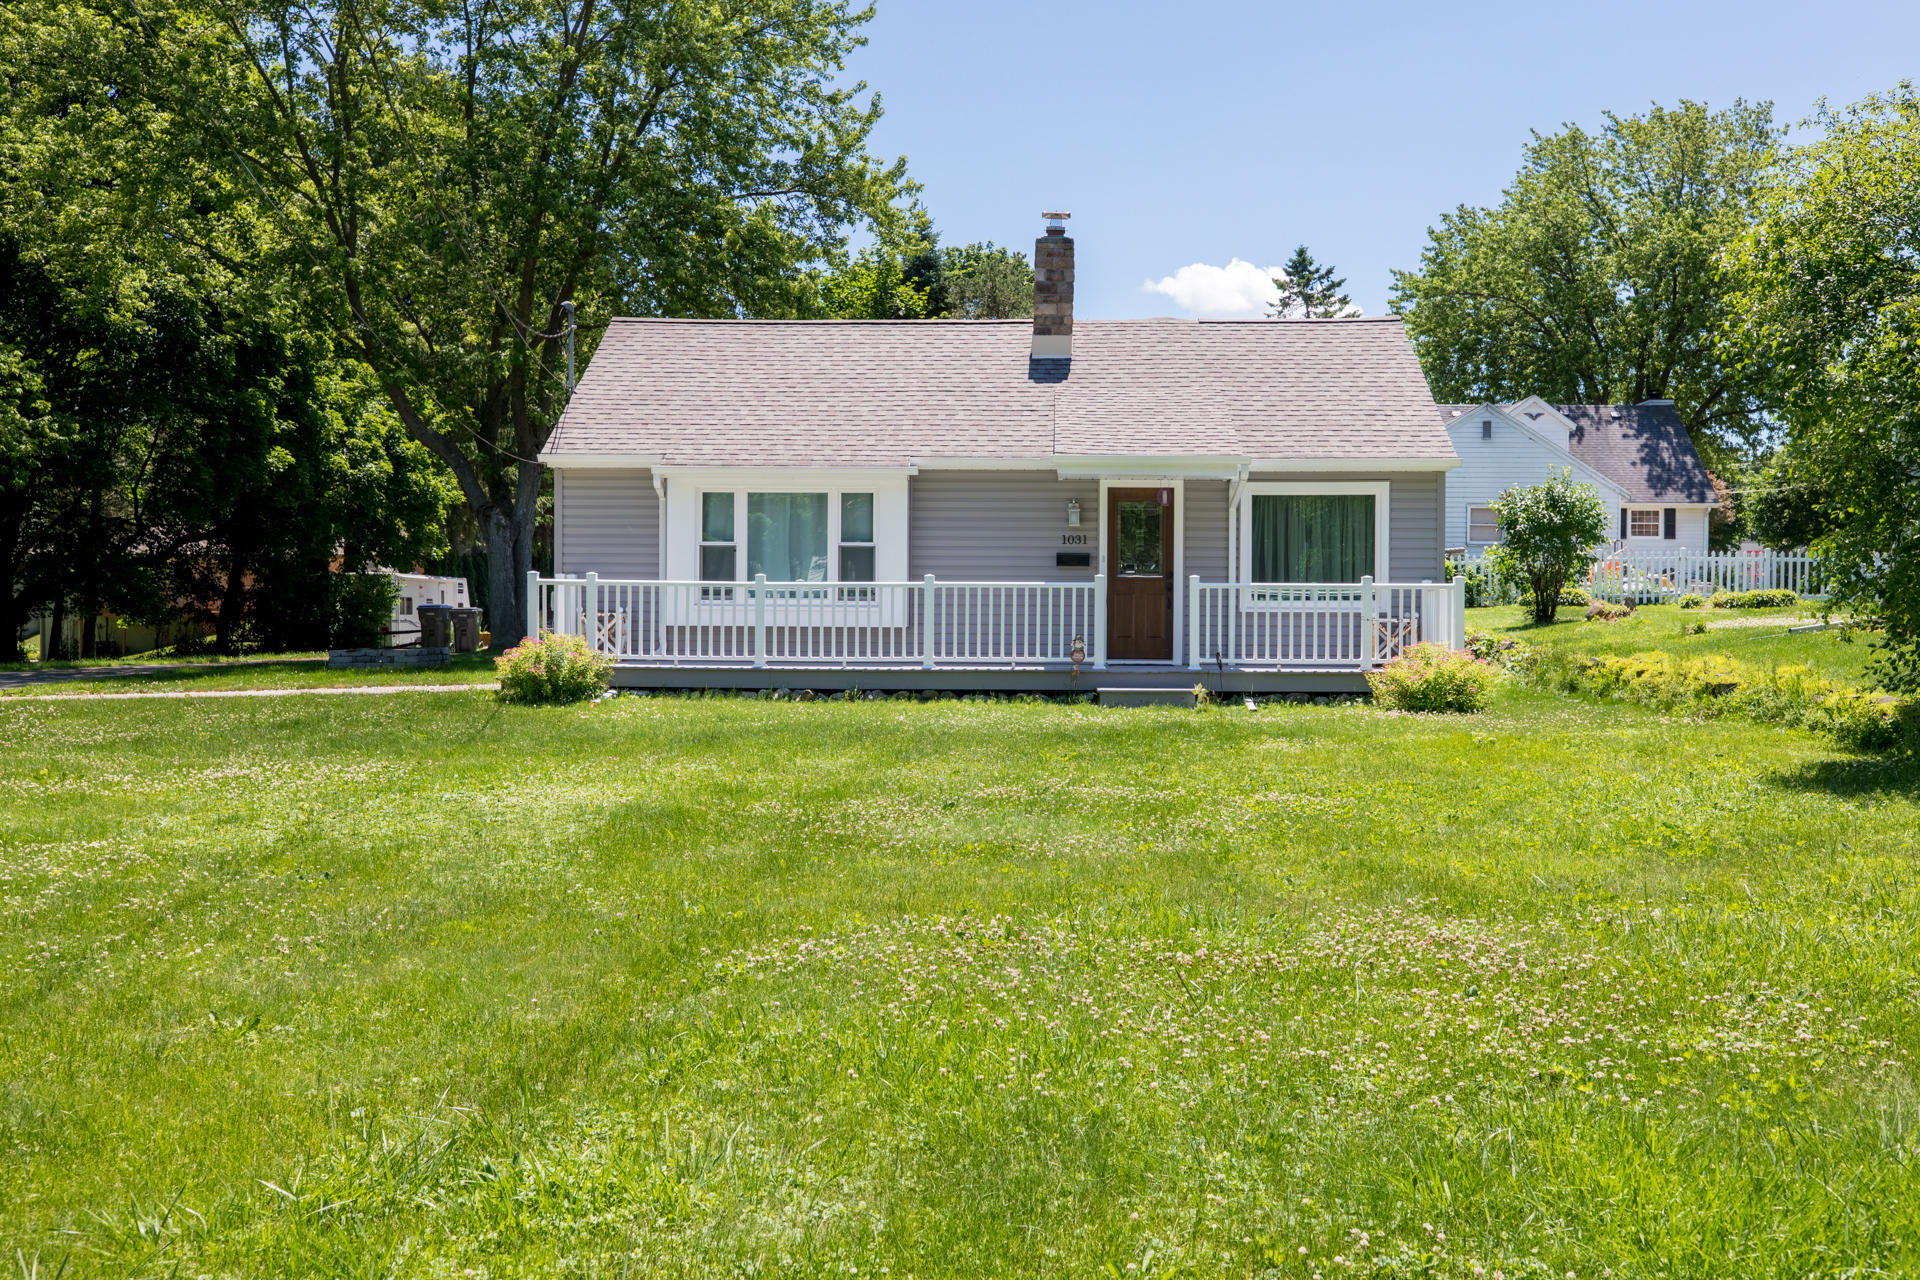 1031 Lisbon Ave, Hartland, Wisconsin 53029, 3 Bedrooms Bedrooms, 6 Rooms Rooms,1 BathroomBathrooms,Single-Family,For Sale,Lisbon Ave,1696052